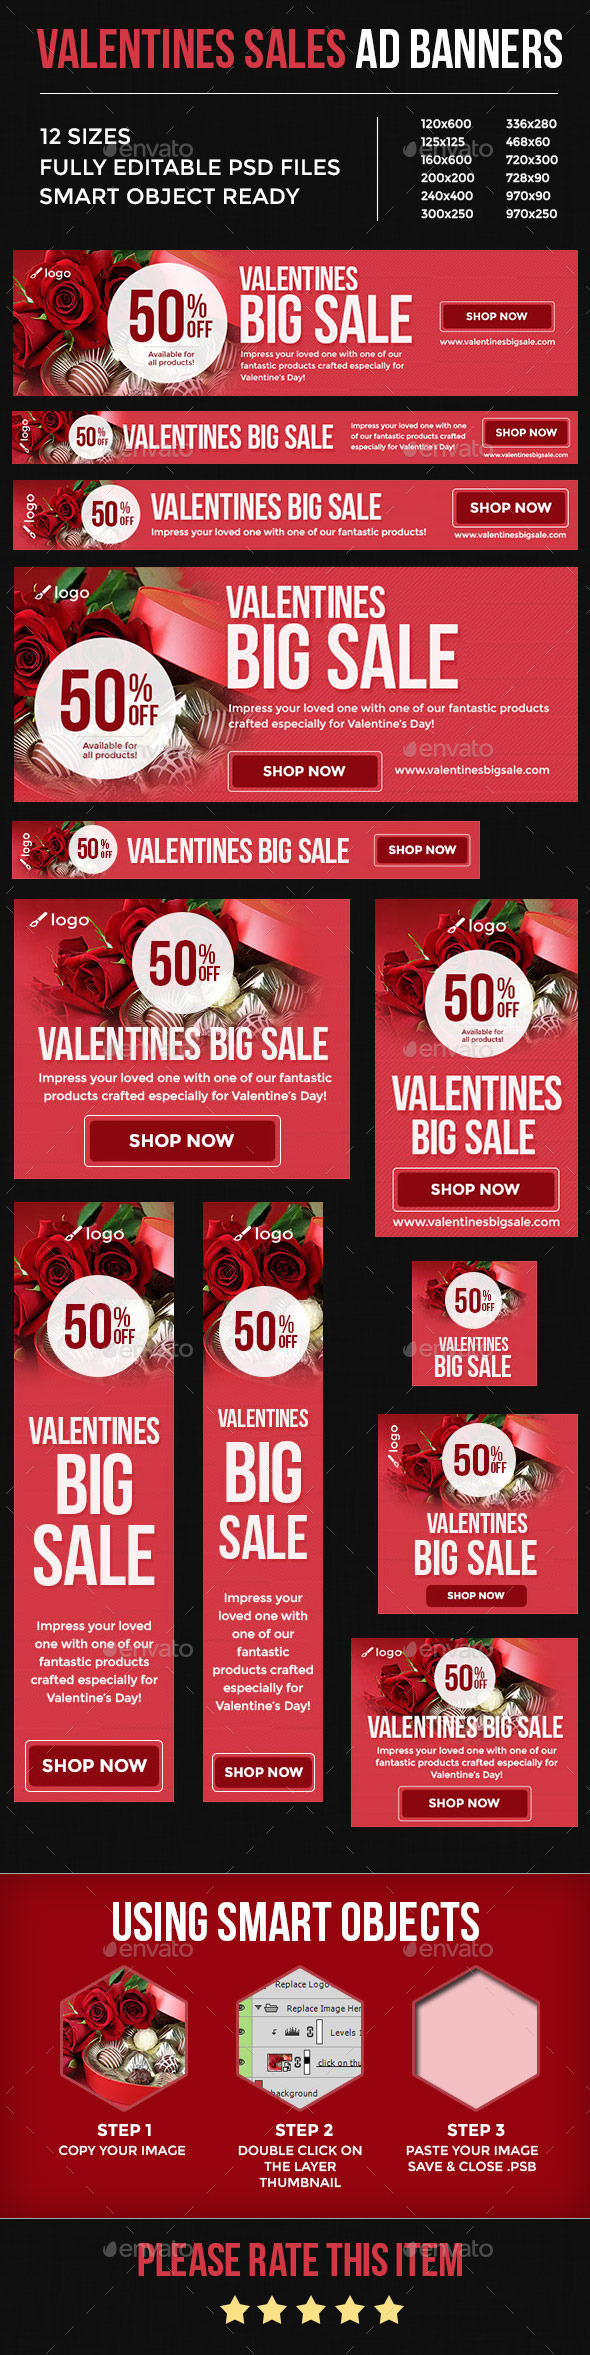 GraphicRiver Valentines Sales Ad Banners 10291716